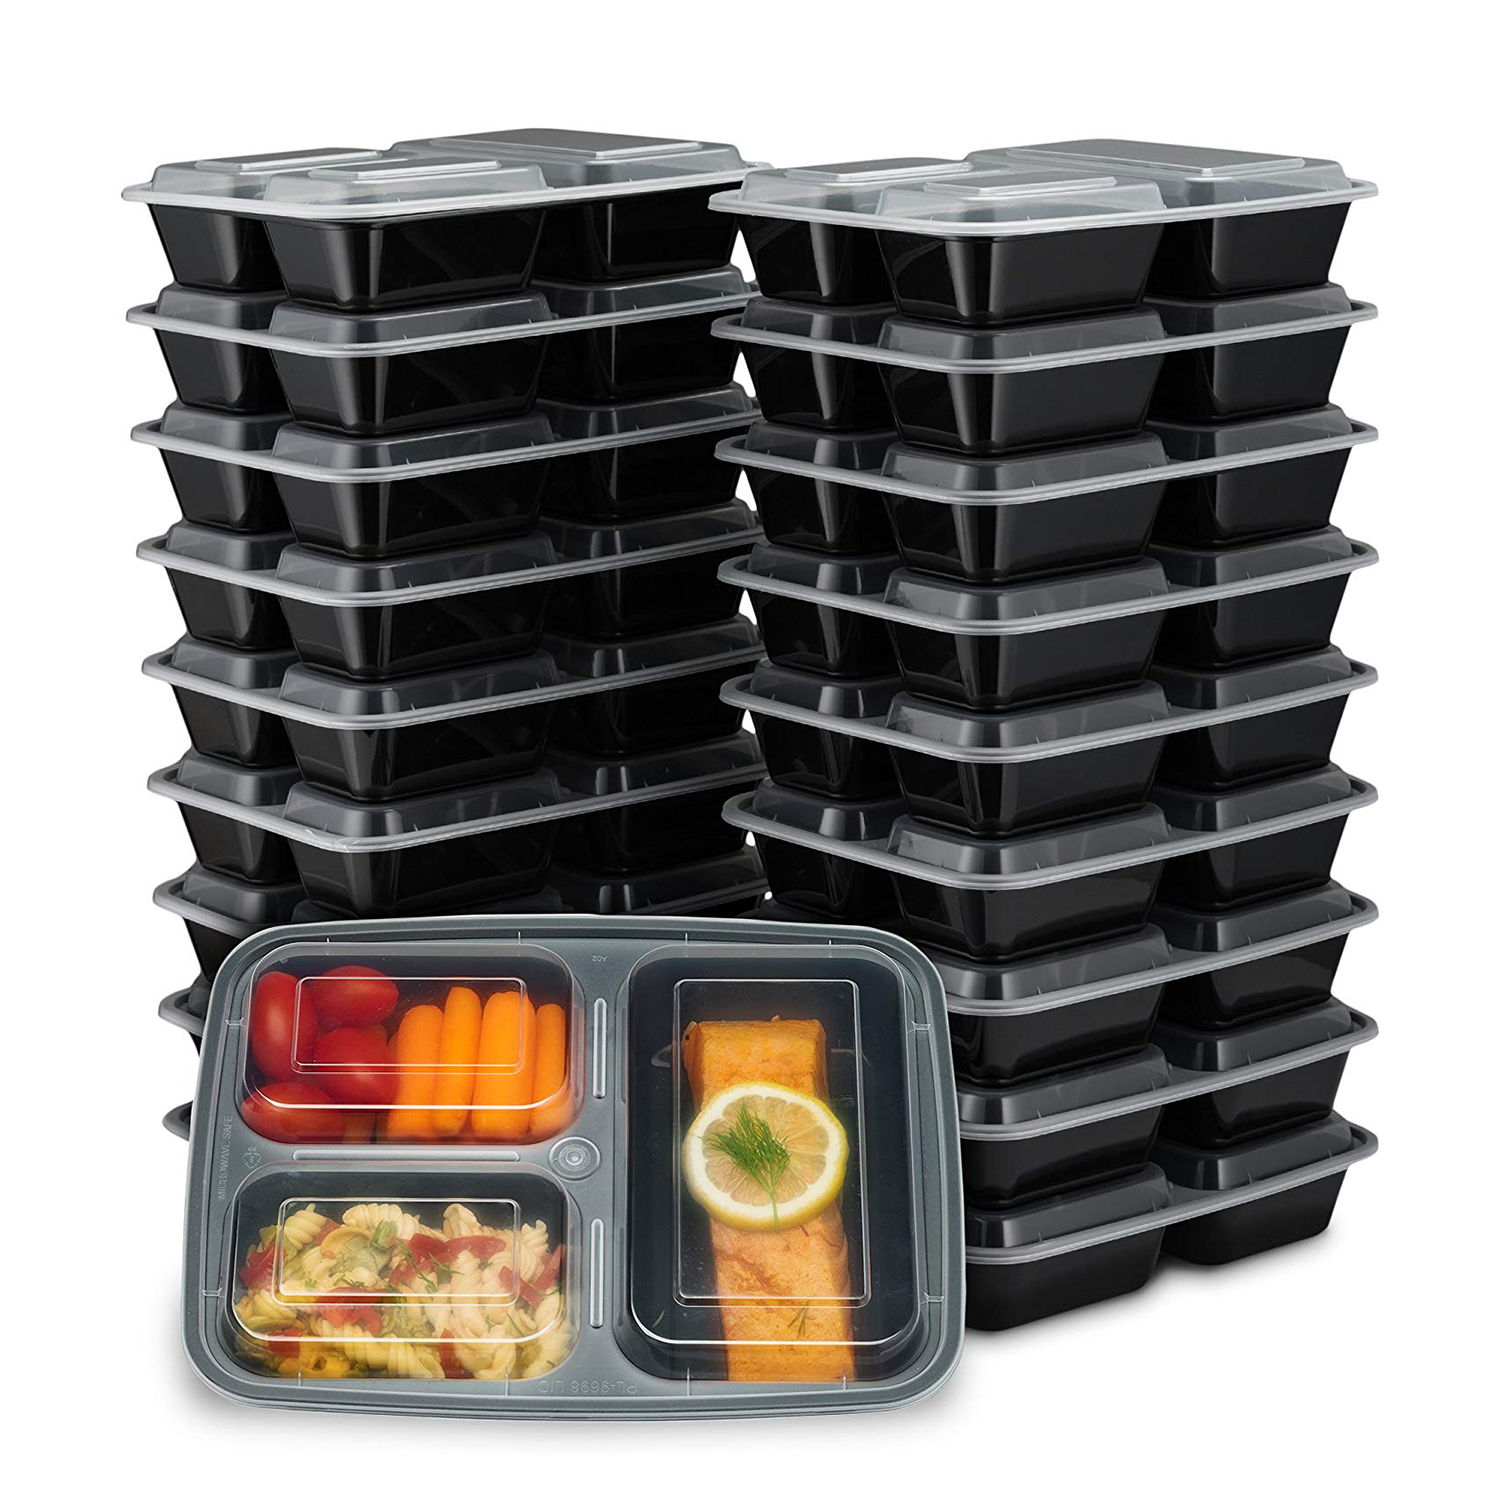 EZ Prepa 20 Pack 32oz 3 Compartment Meal Prep Containers